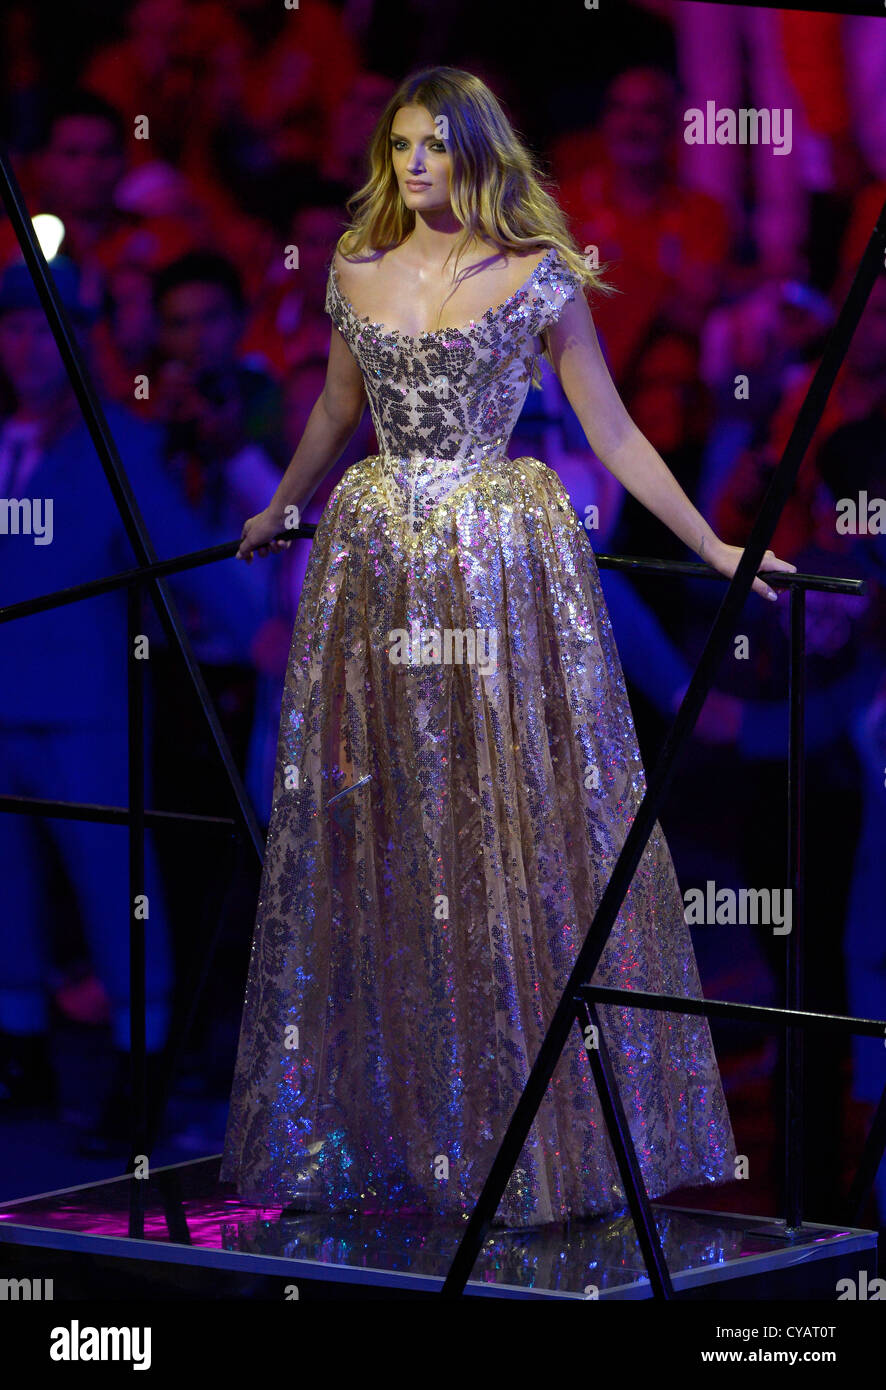 6a0f856ee57 fashionBritish Model Lily Donaldson wearing a gold ball gown by Vivienne  Westwood at the London 2012